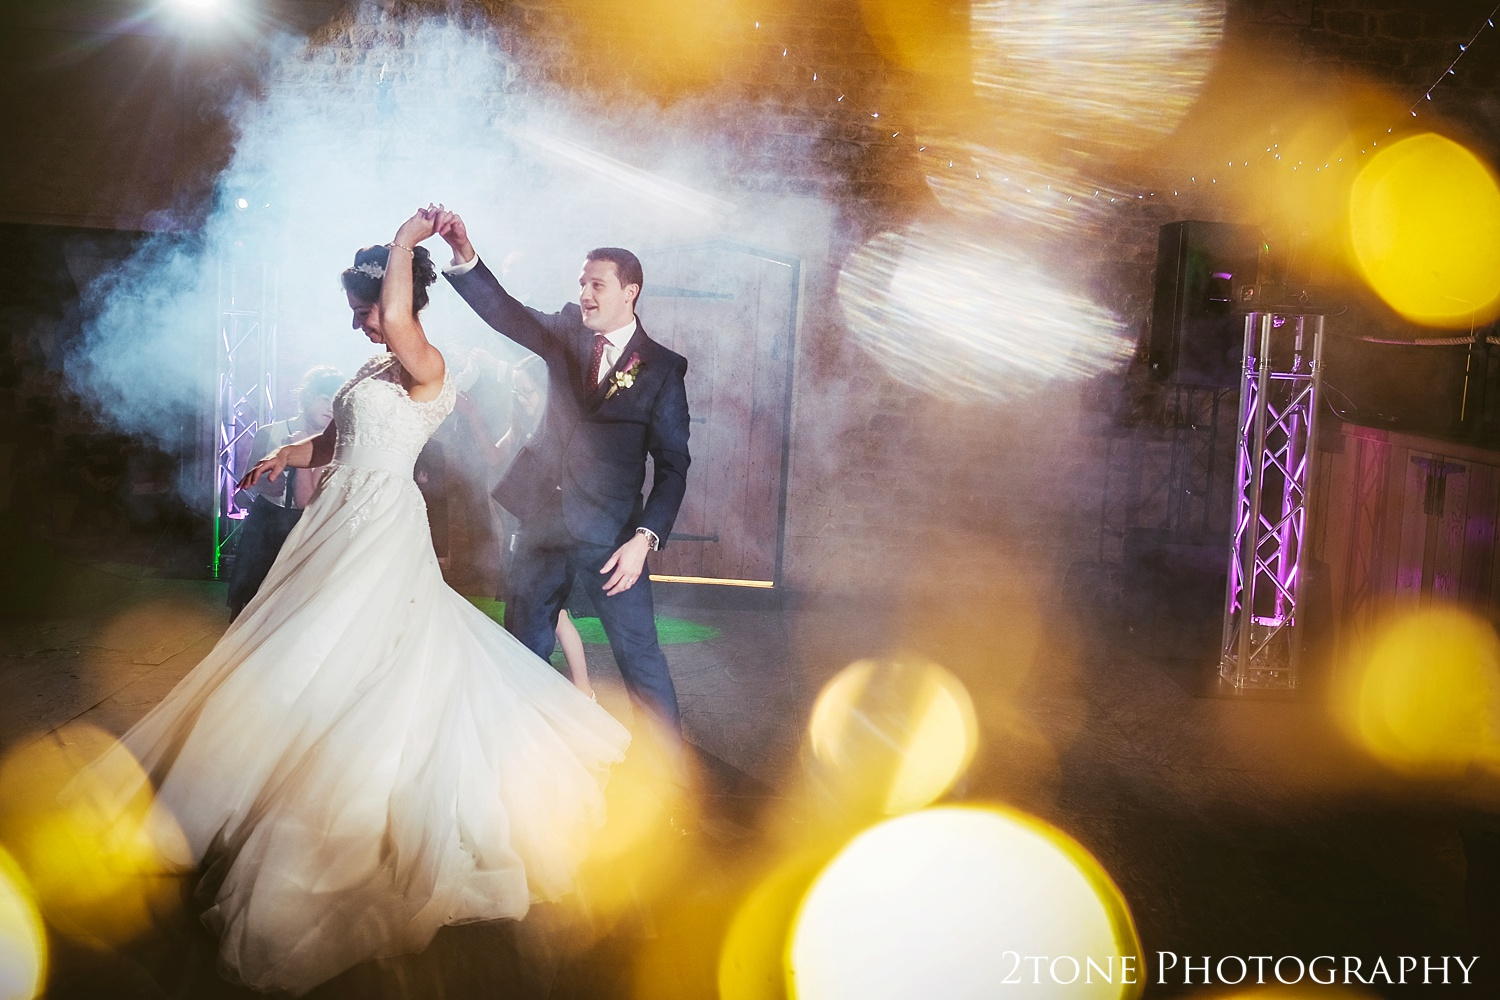 Creative photography at Haselbury Mill and the Old Tythe Barn in Somerset by www.2tonephotography.co.uk